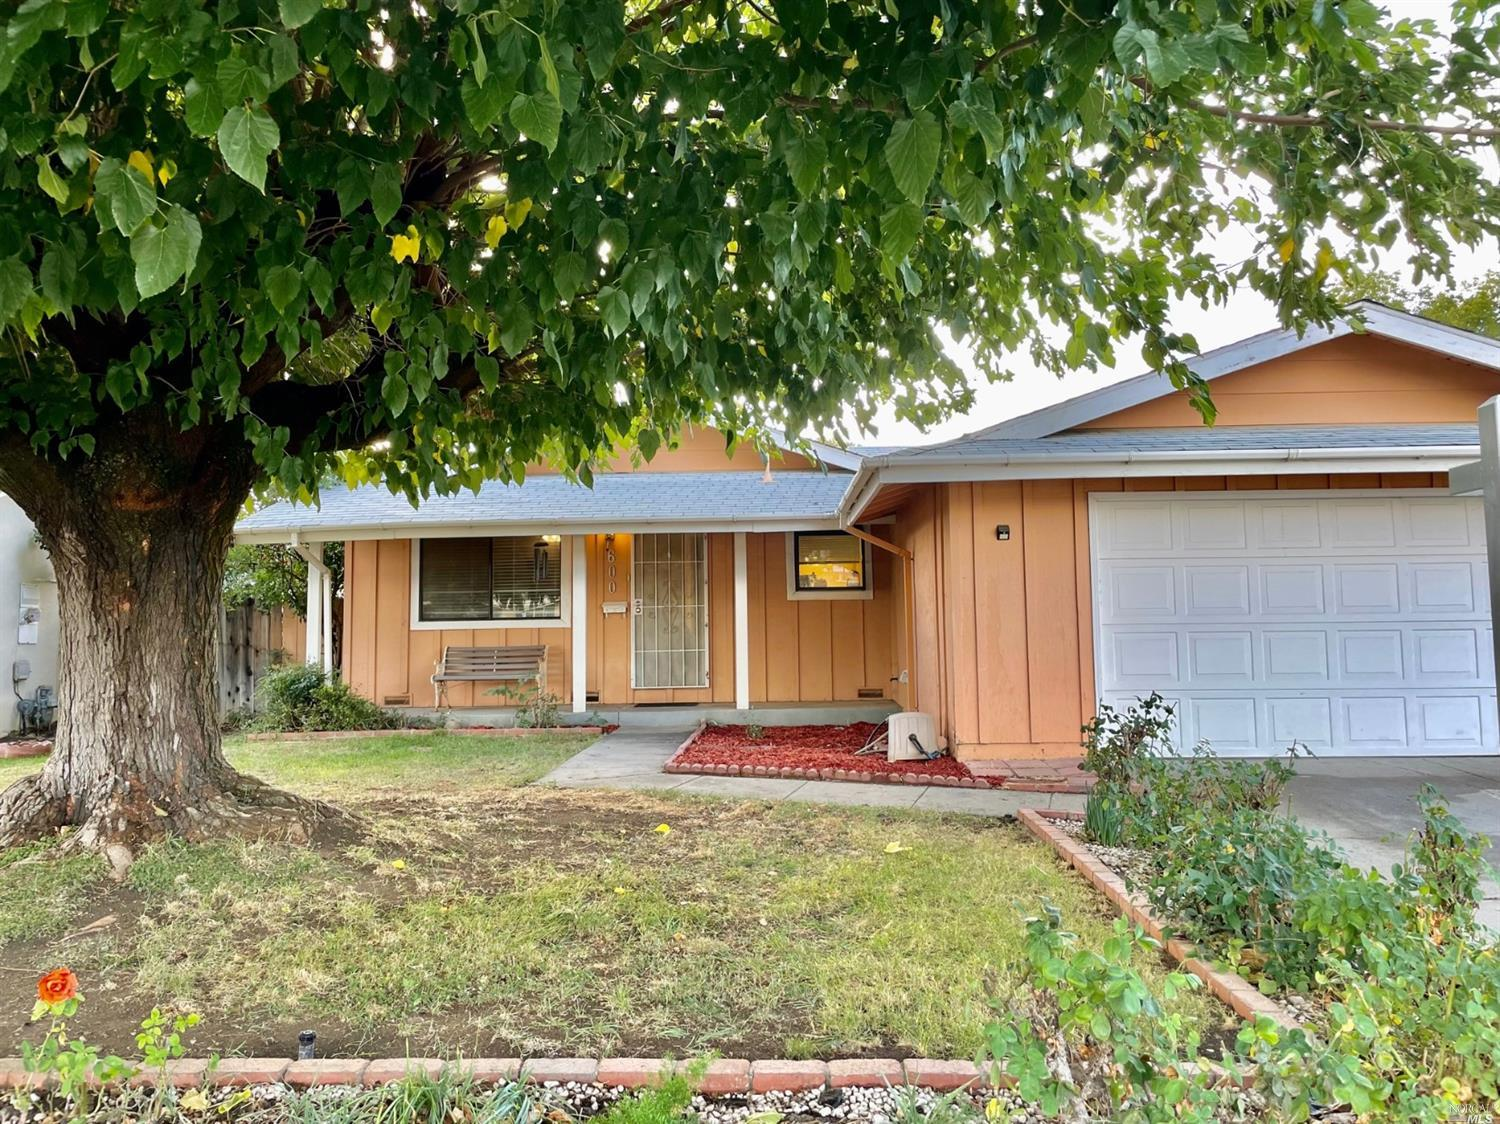 Possibilities are endless with this 3 bedroom, 2 full bathroom home located on a spacious sized lot.